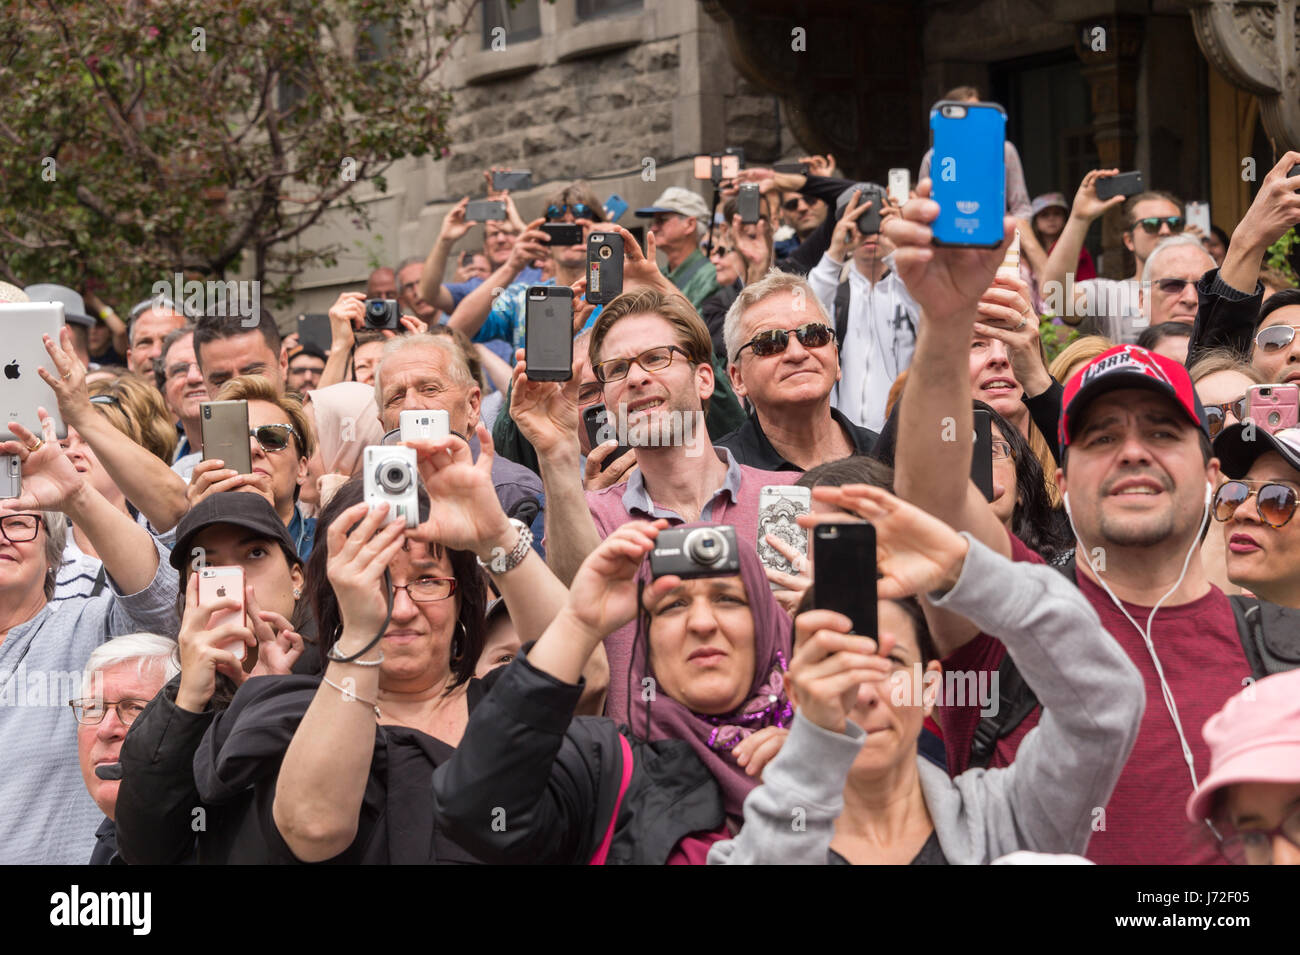 Montreal, CA - 21 May 2017: Spectators taking pictures with cell phones during Royal de Luxe show - Stock Image